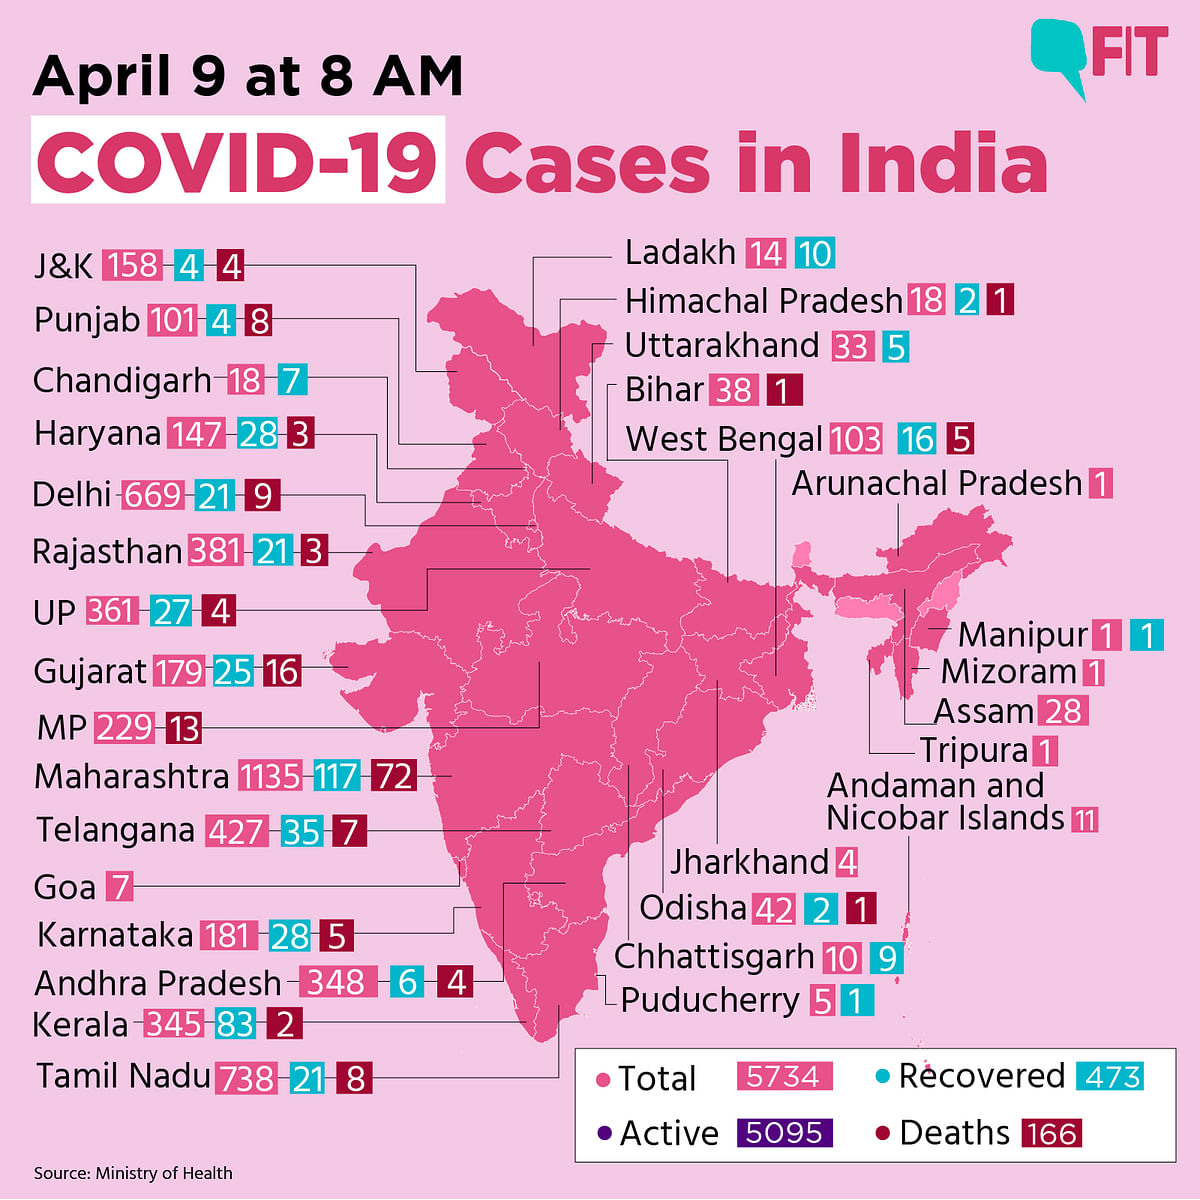 COVID-19 India Update: 5,734 Total Cases, Death Toll at 166